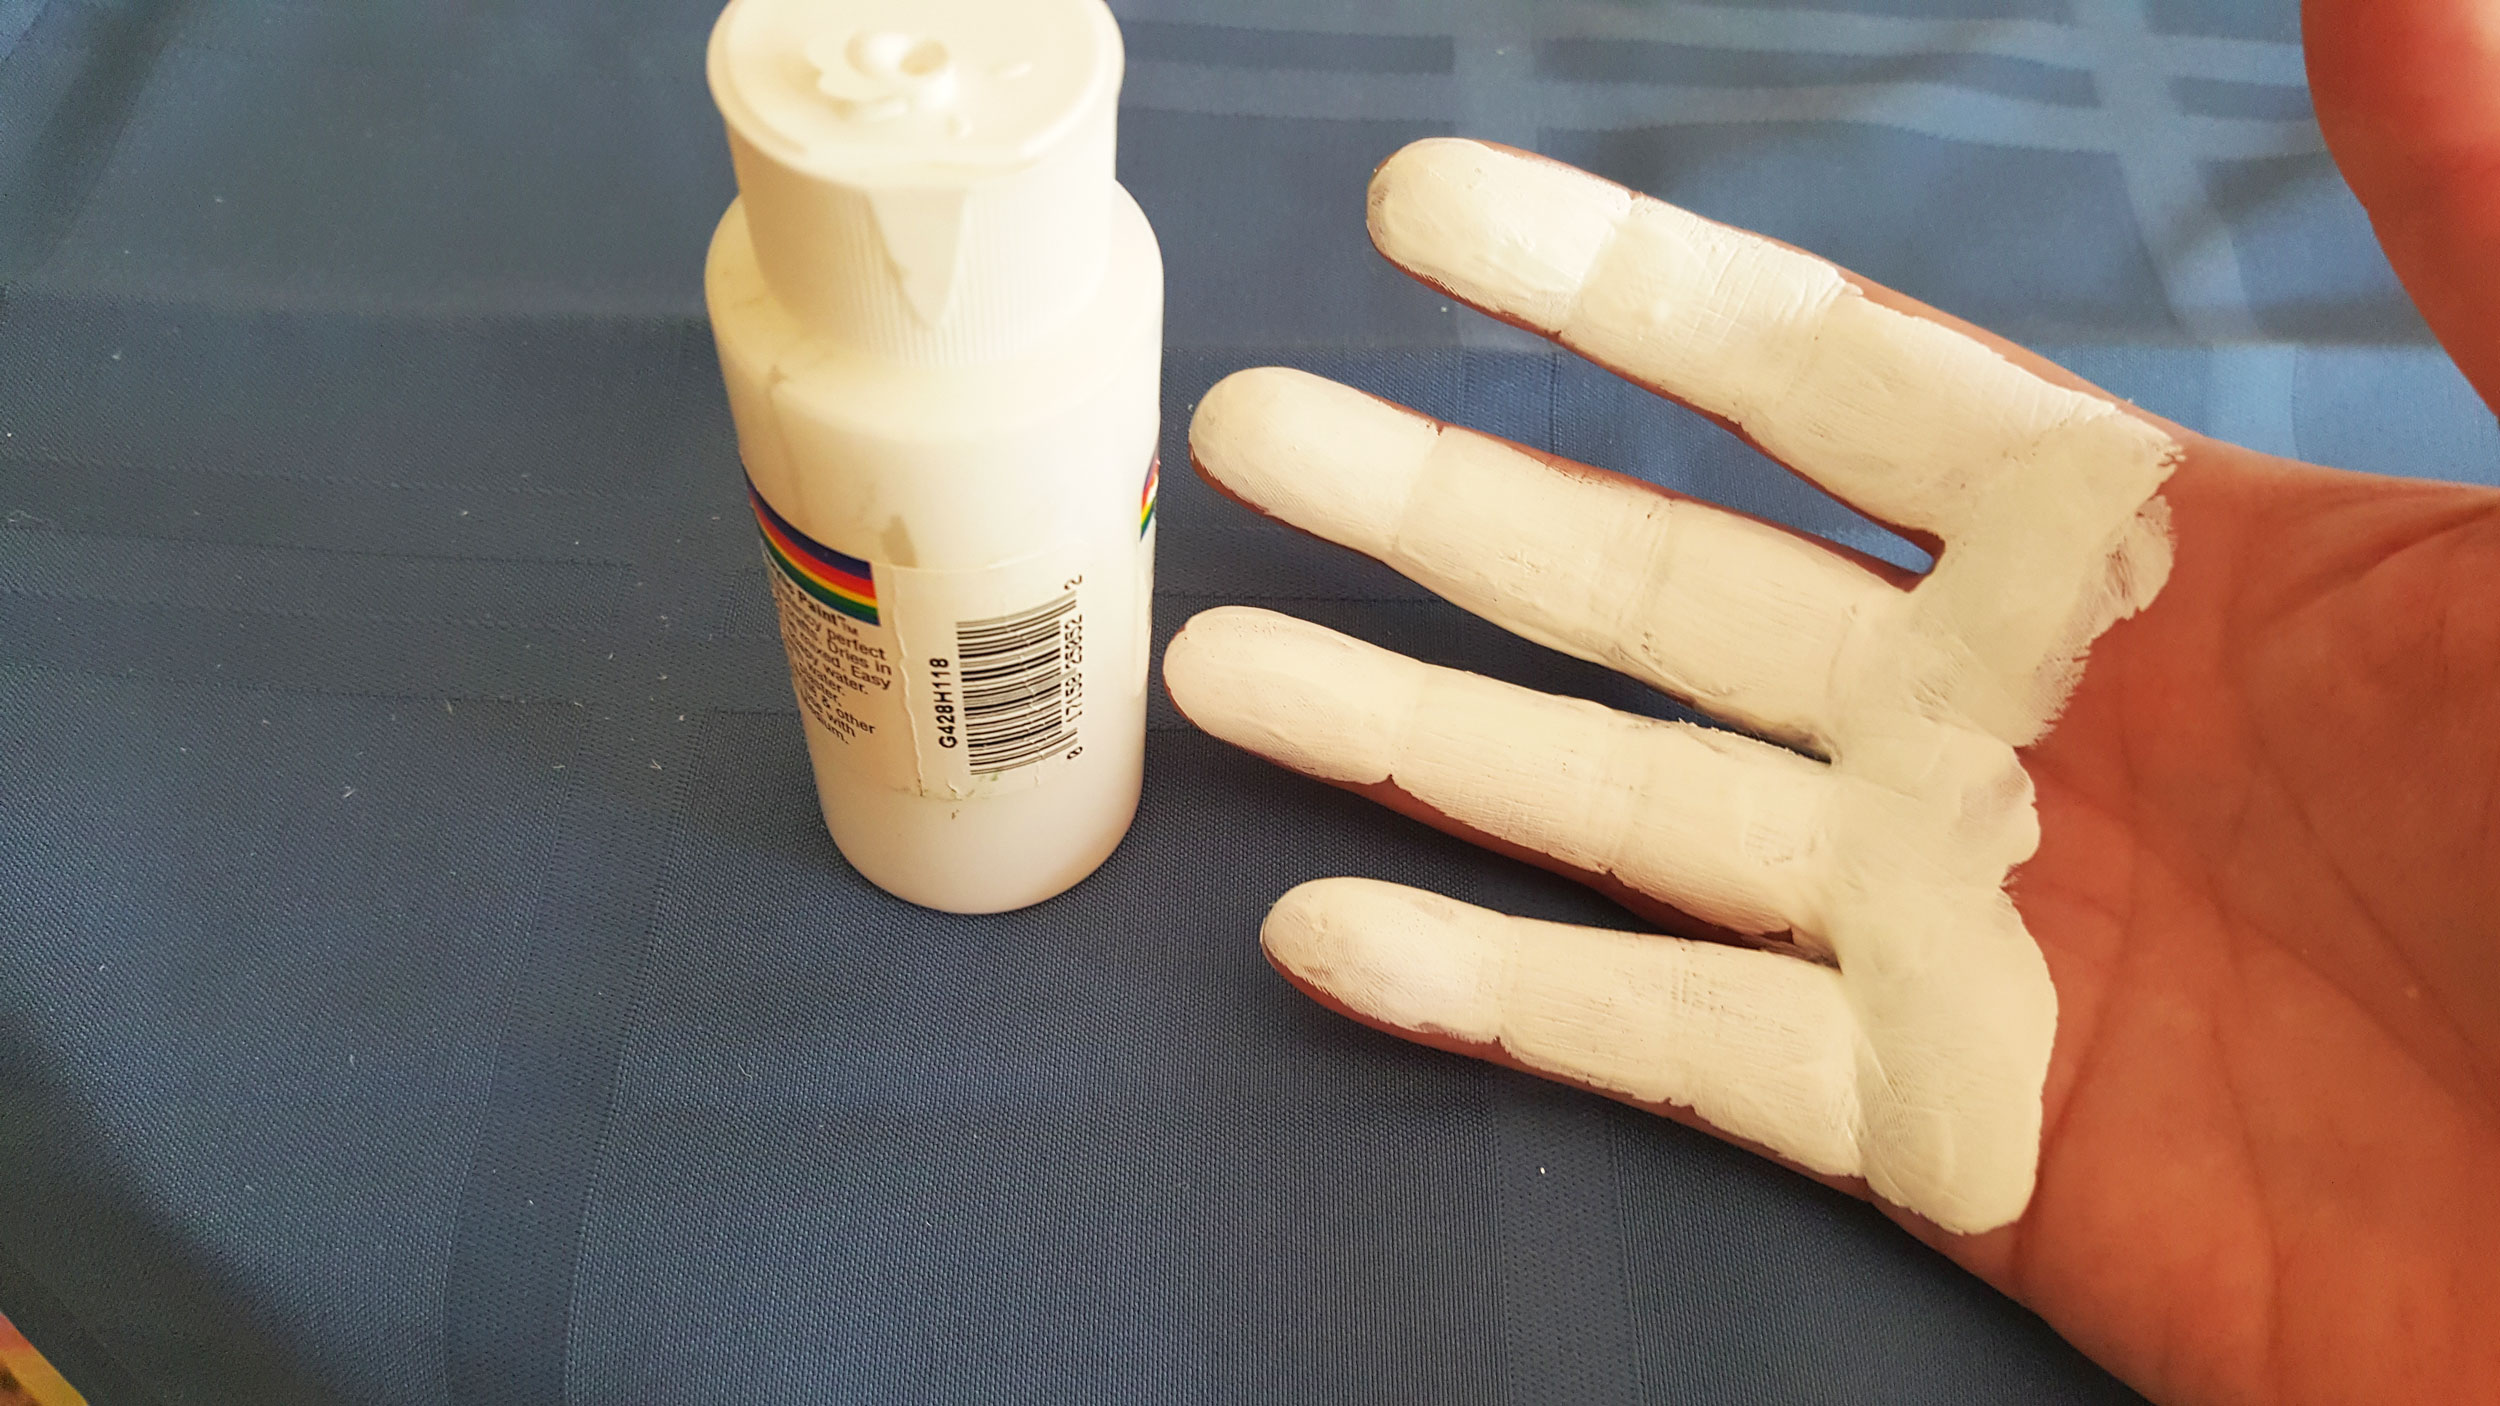 Step 2 is to coat the four fingers of your hand with white paint down to about half of your palm. | OrnamentShop.com